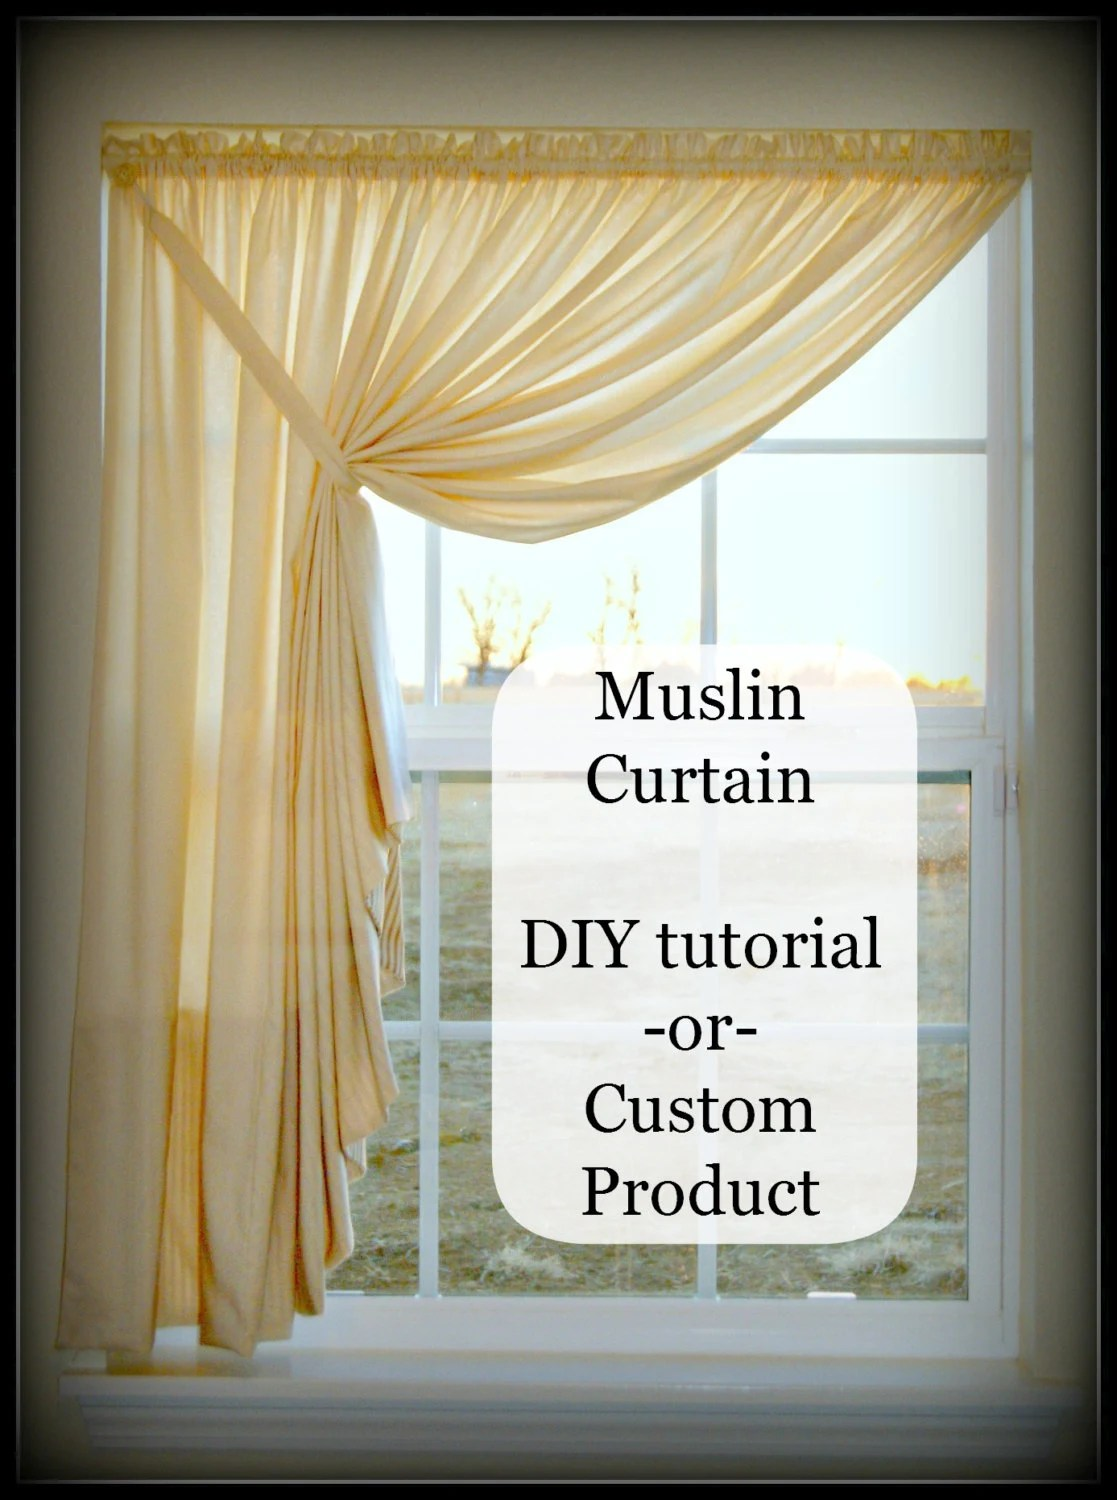 Easy Diy Pattern Tutorial For Muslin Swag Curtain By